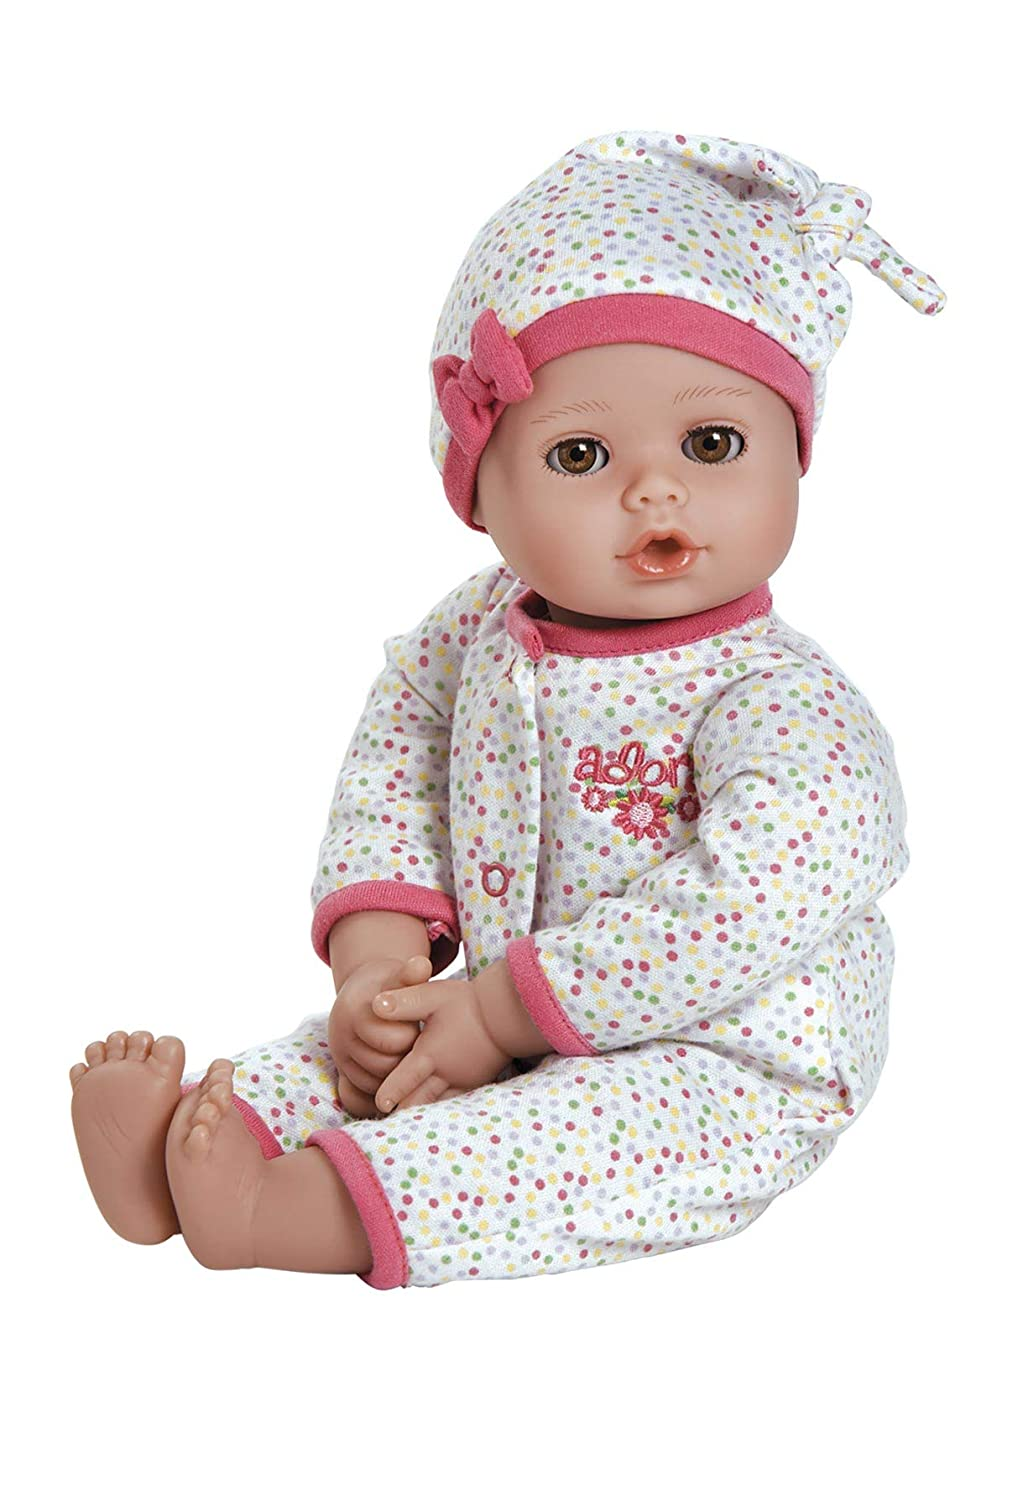 """Adora PlayTime Baby Dot Vinyl 13"""" Girl Weighted Washable Play Doll Gift Set with Open/Close Eyes for Children 1+ Includes Bottle Cuddly Snuggle Soft Toy"""